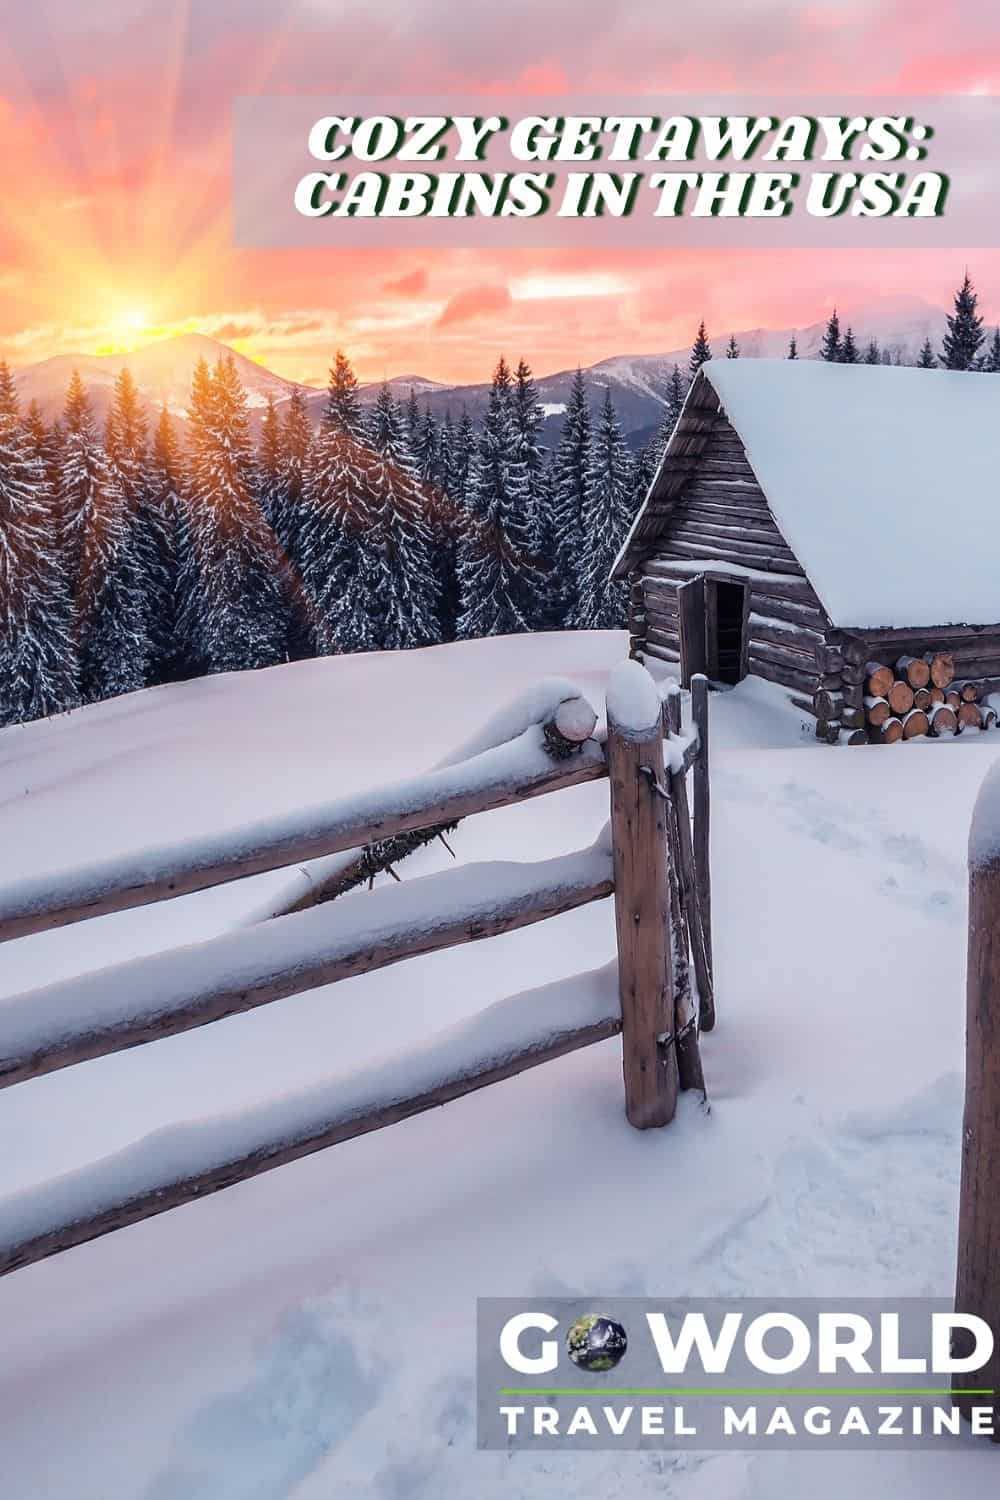 A log cabin and fence among a snowy forest backdrop during sunrise